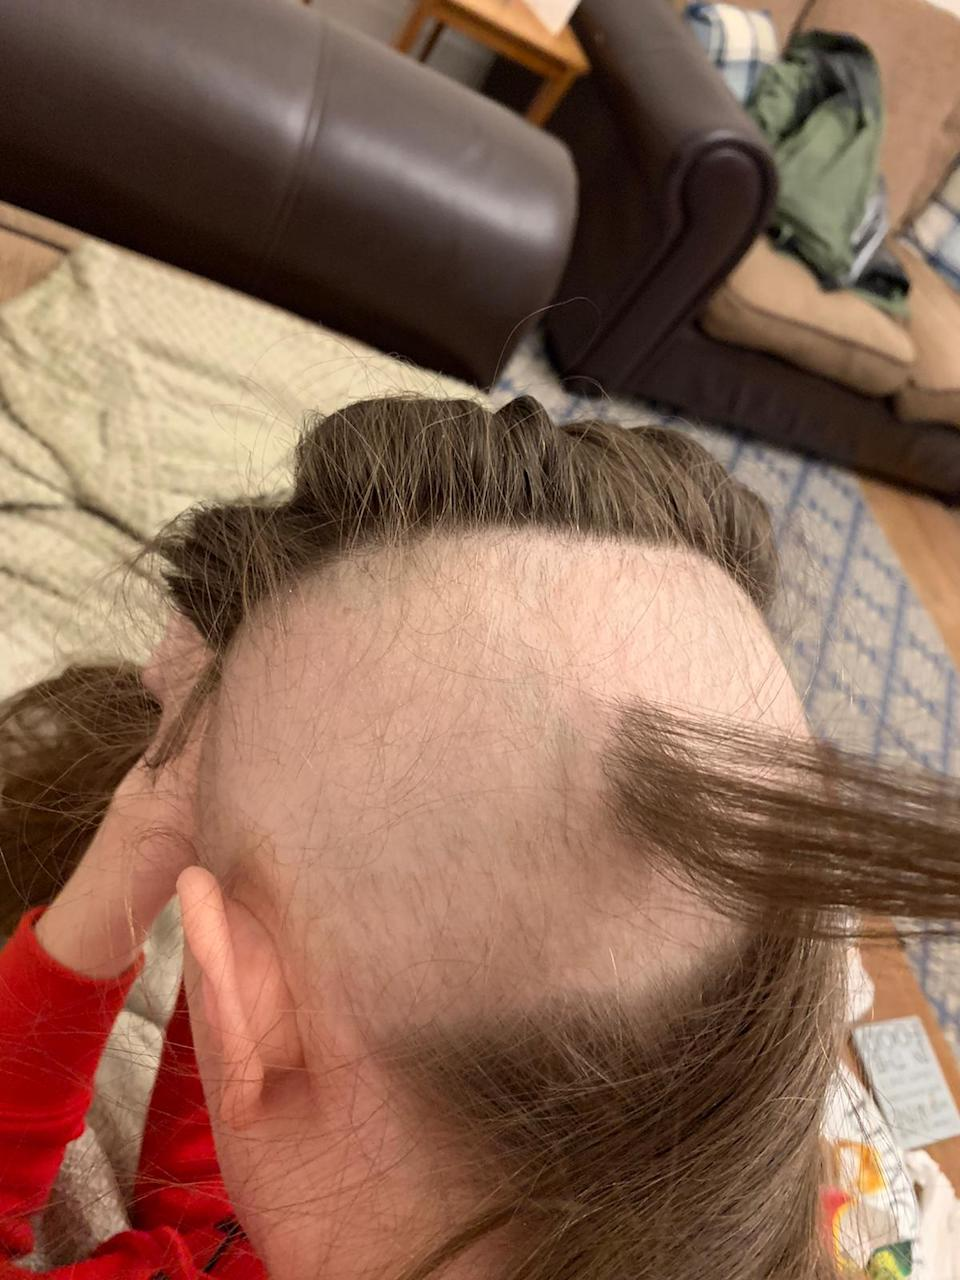 Pictured is Emma Bond and her hair loss during her brain tumour treatment.